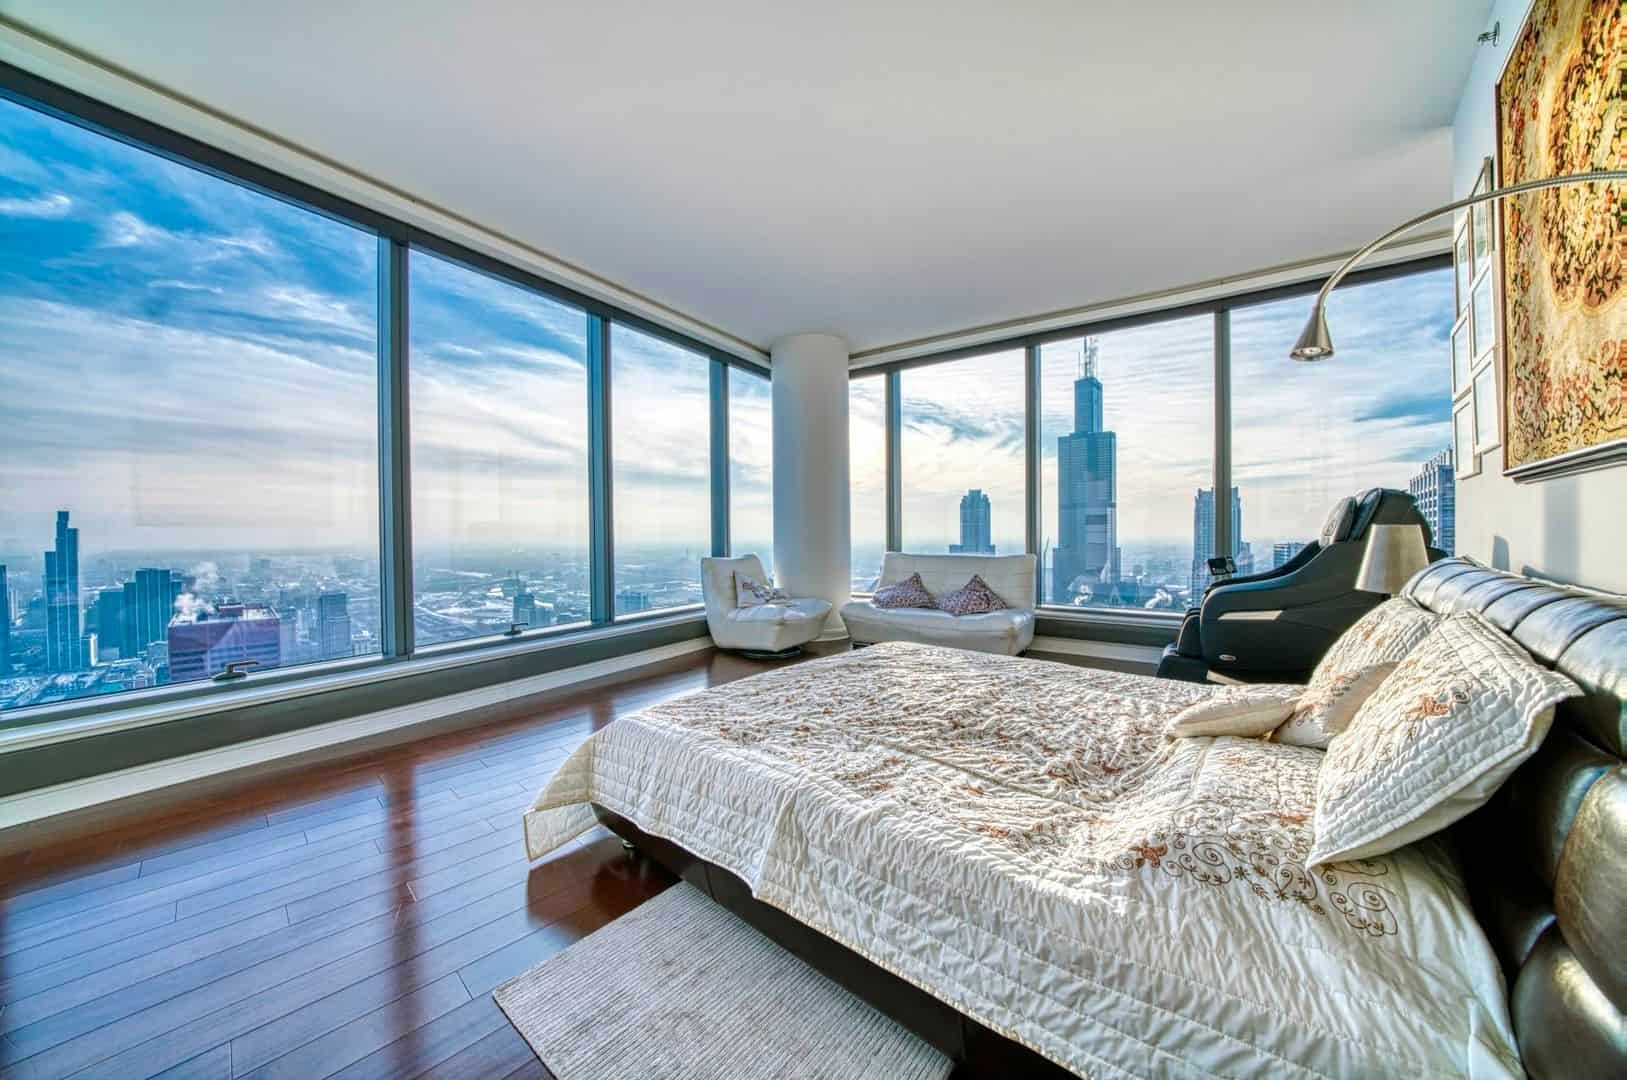 Spectacular Downtown Chicago Penthouse Rental - Main Bedroom